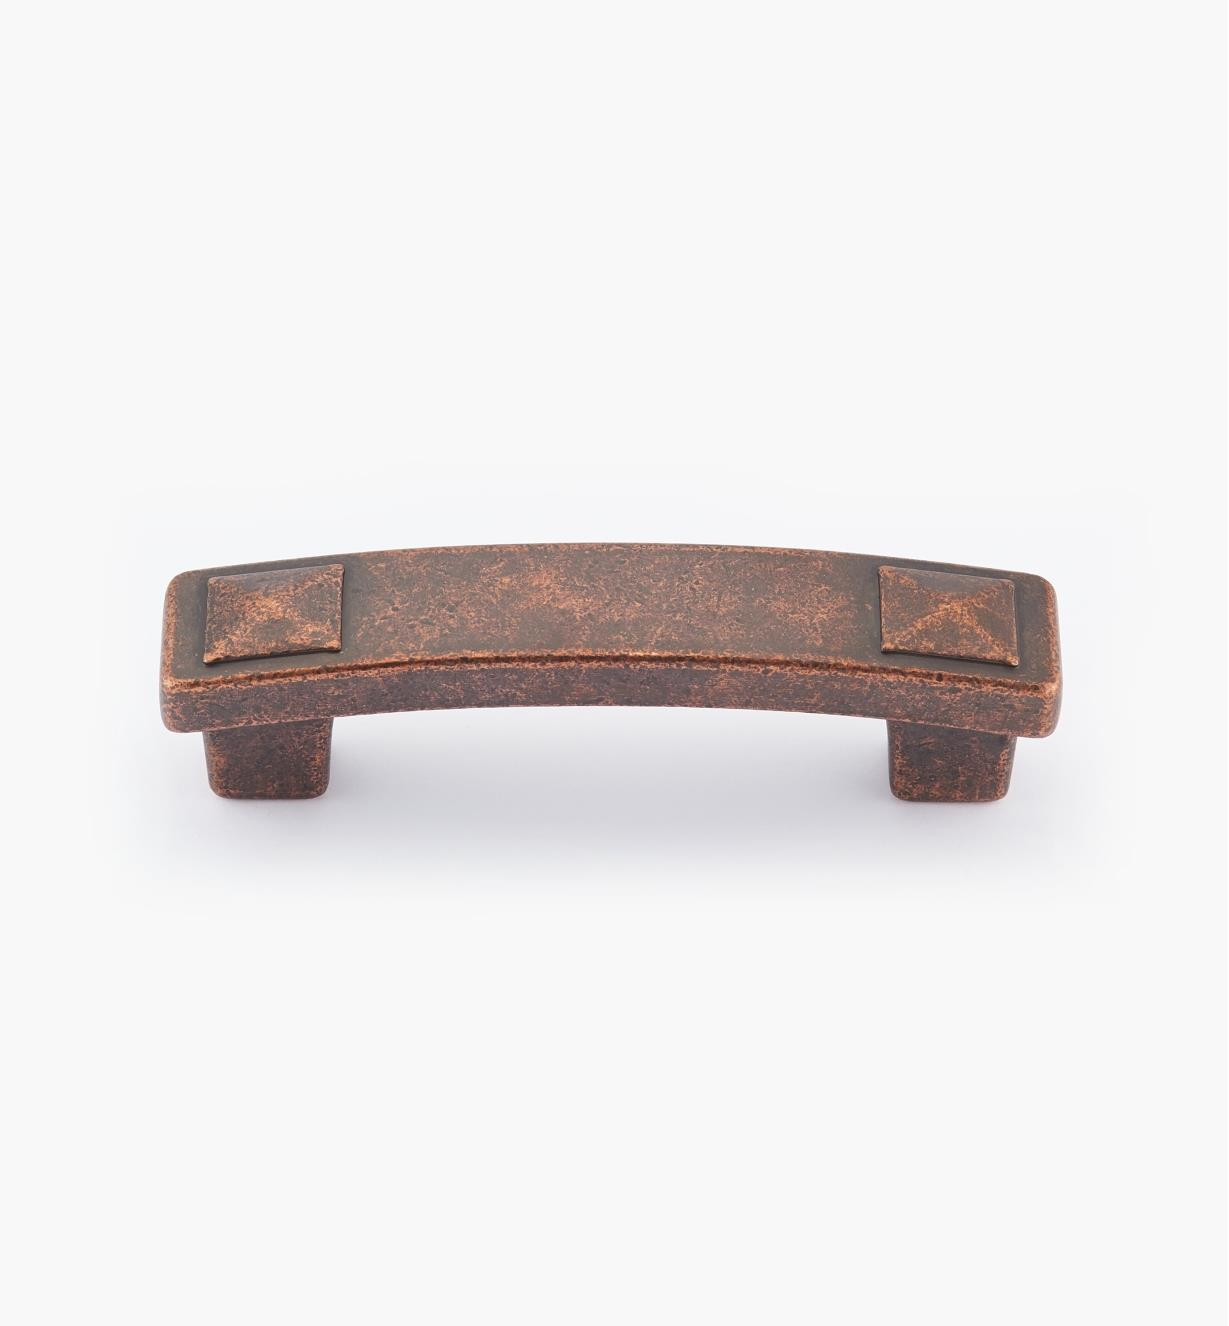 02A0975 - Forgings Rich Bronze Pyramid Handle